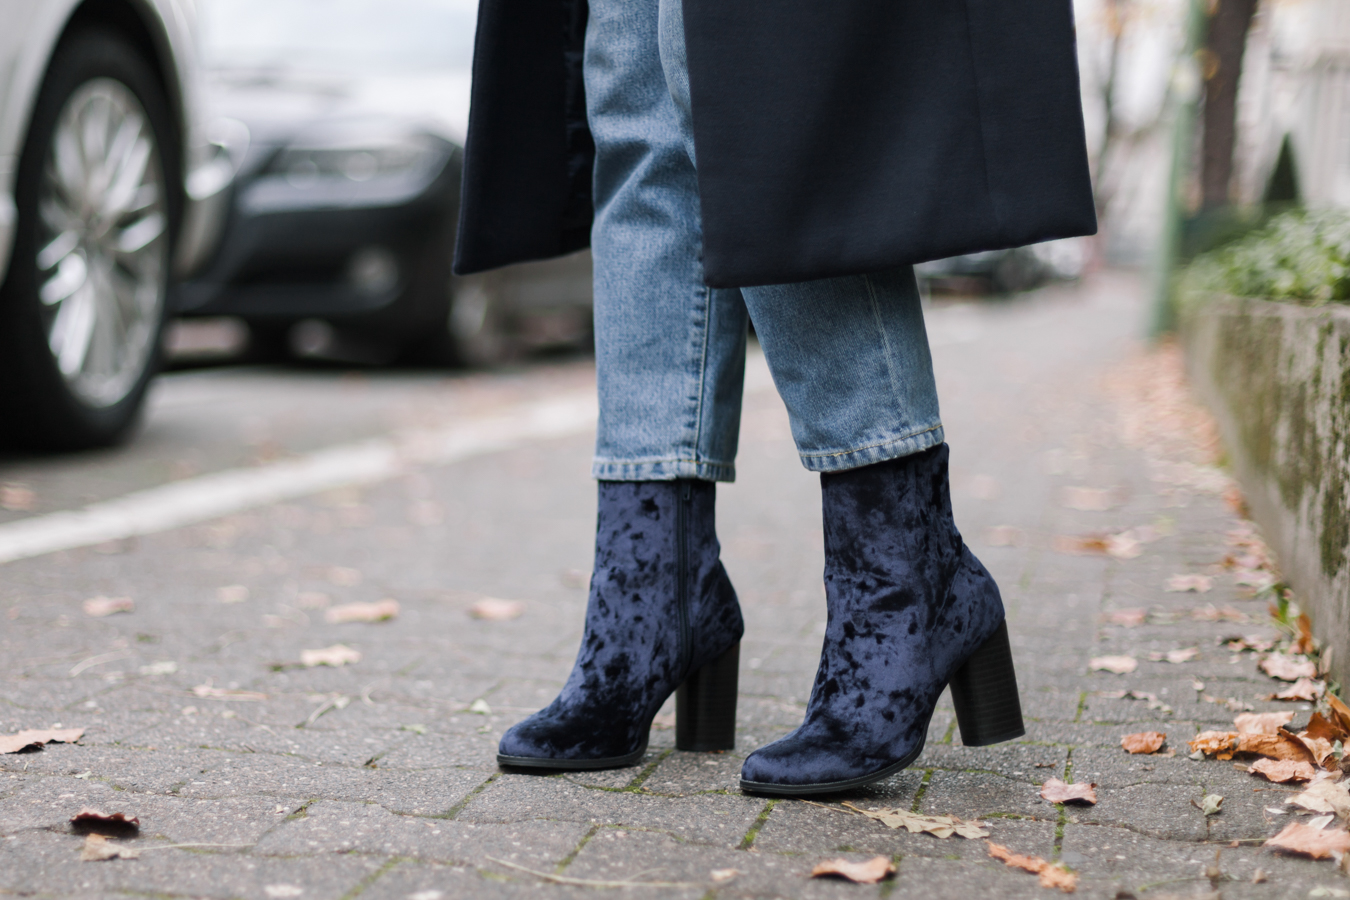 velvet-boots-mom-jeans-outfit-livia-auer-4112